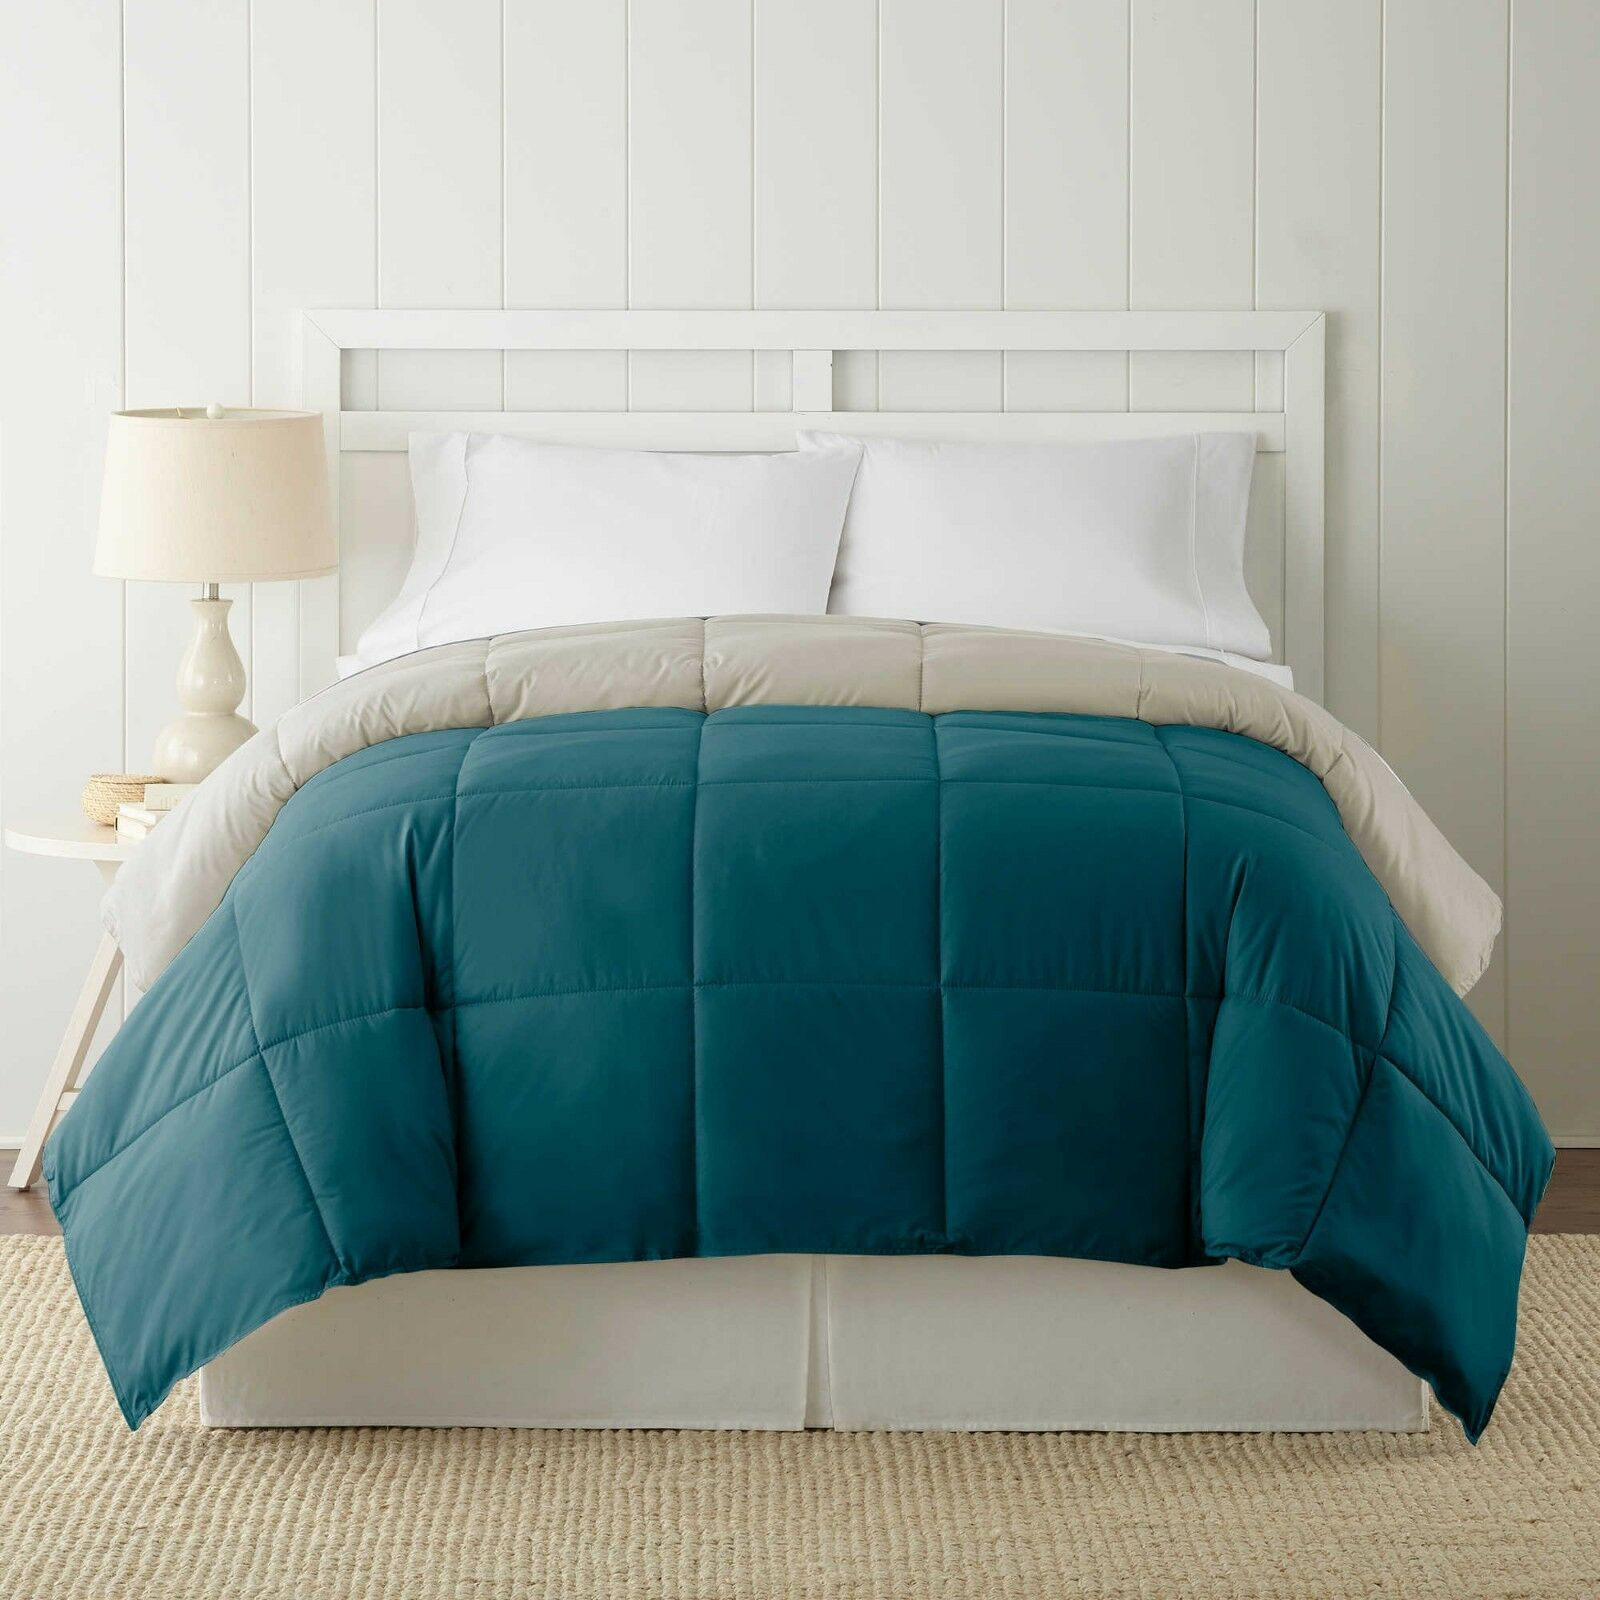 Bed Pacific Coast Textiles Down Alternative Reversible King Comforter Blau Coral